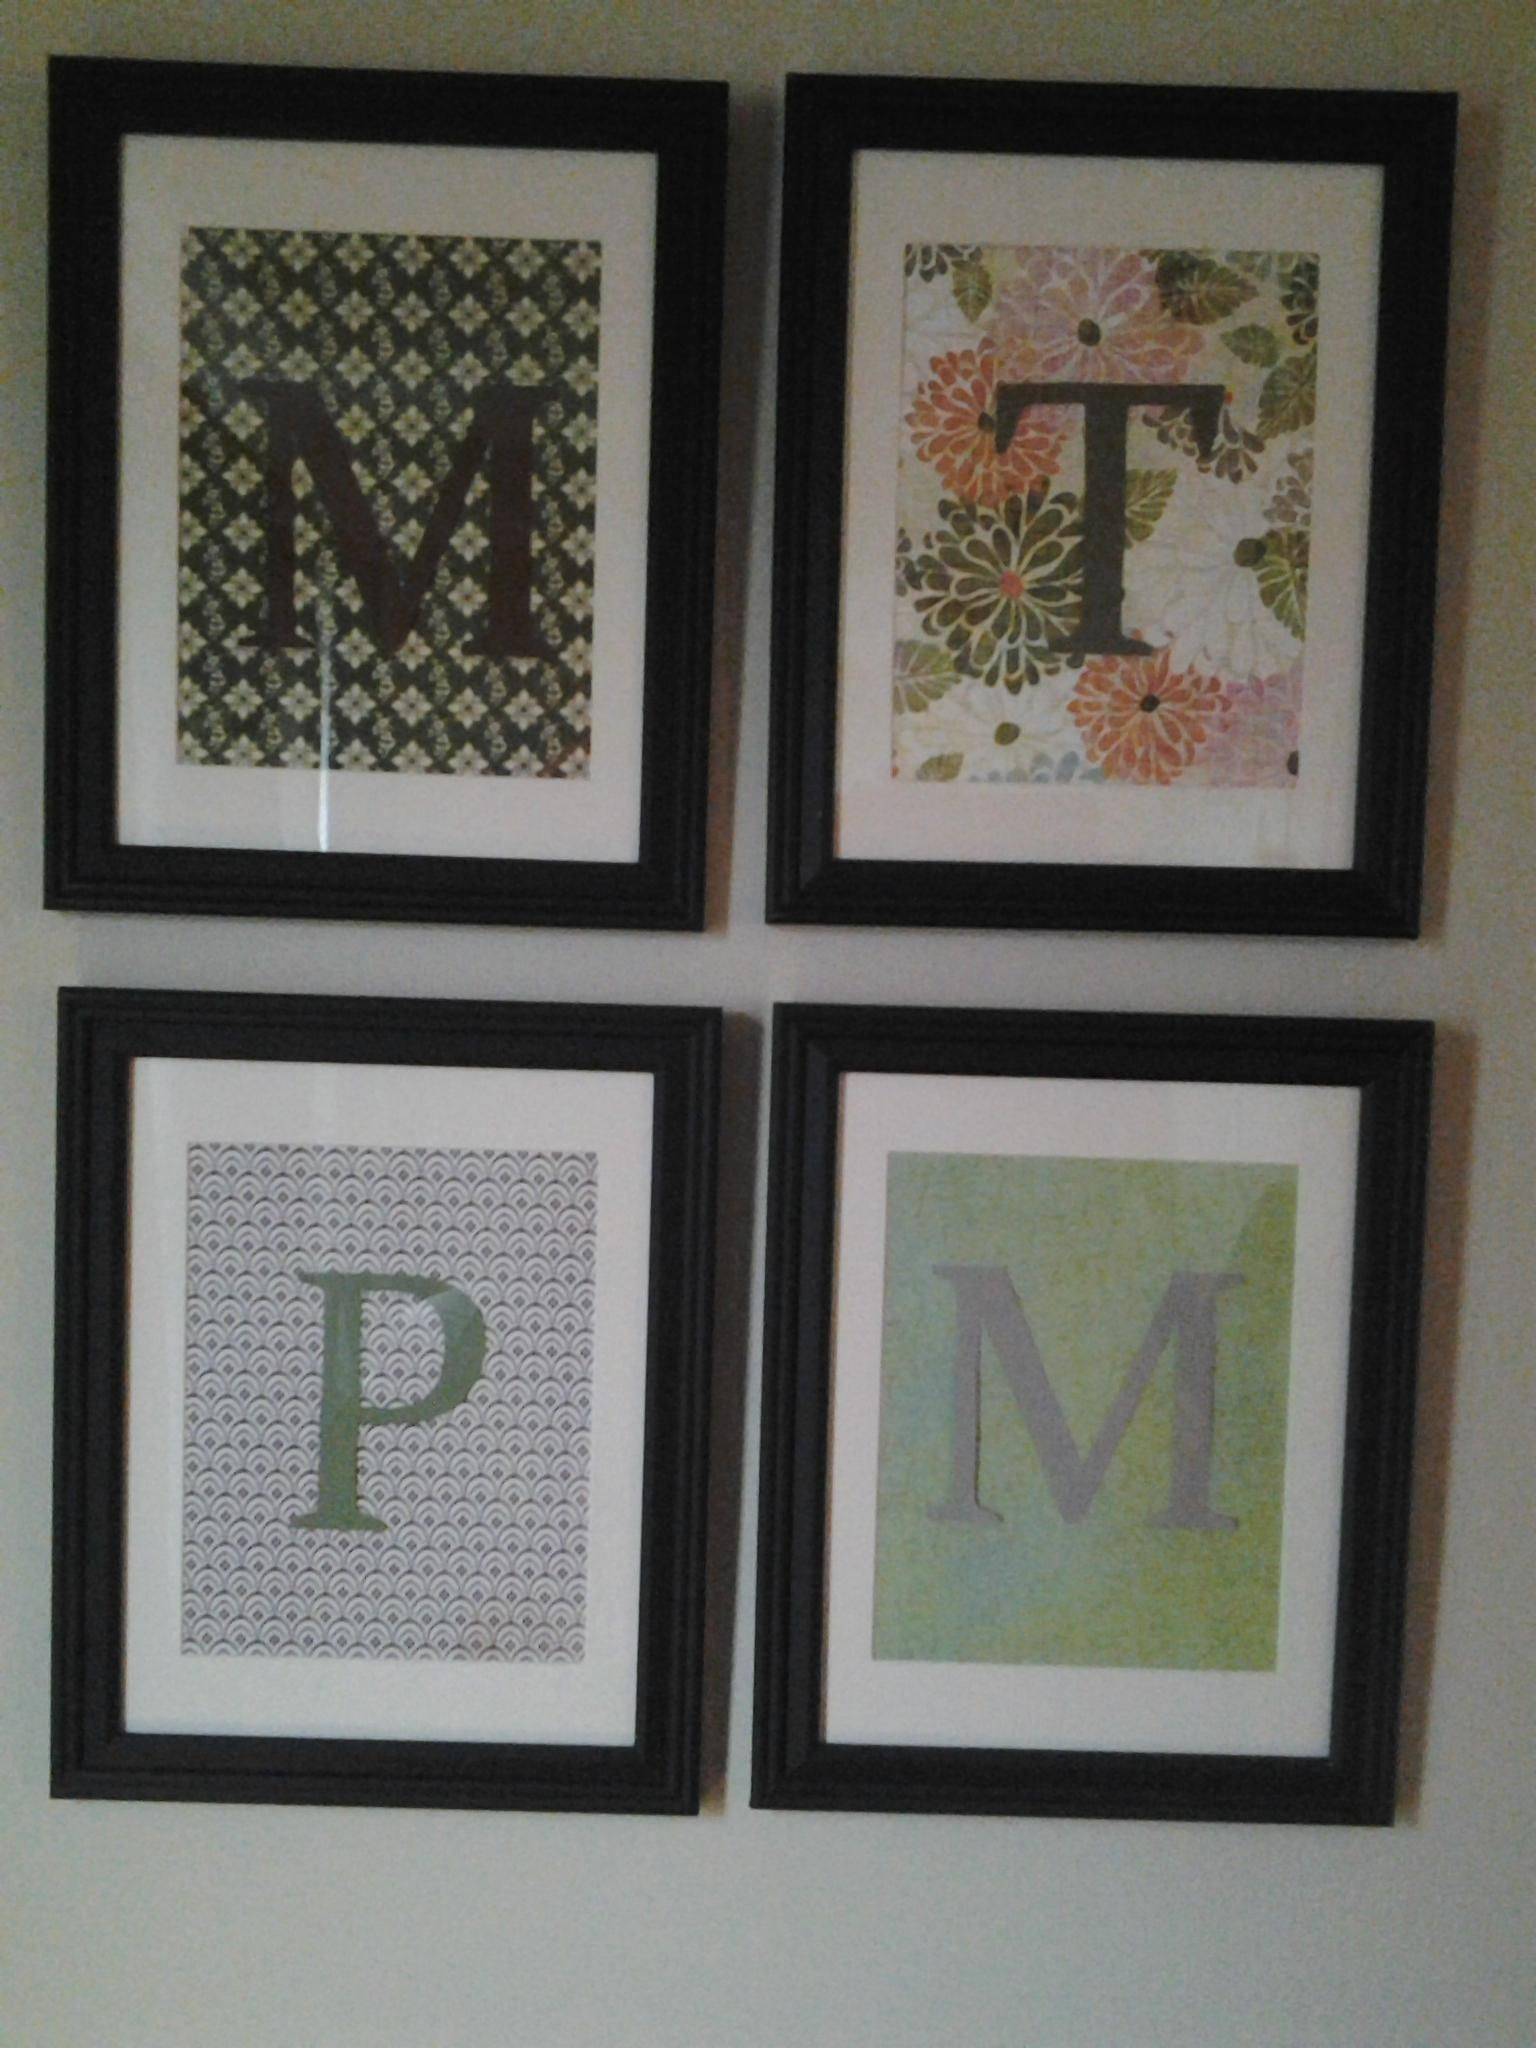 8 x 10 frames with scrapbook paper backgrounds and